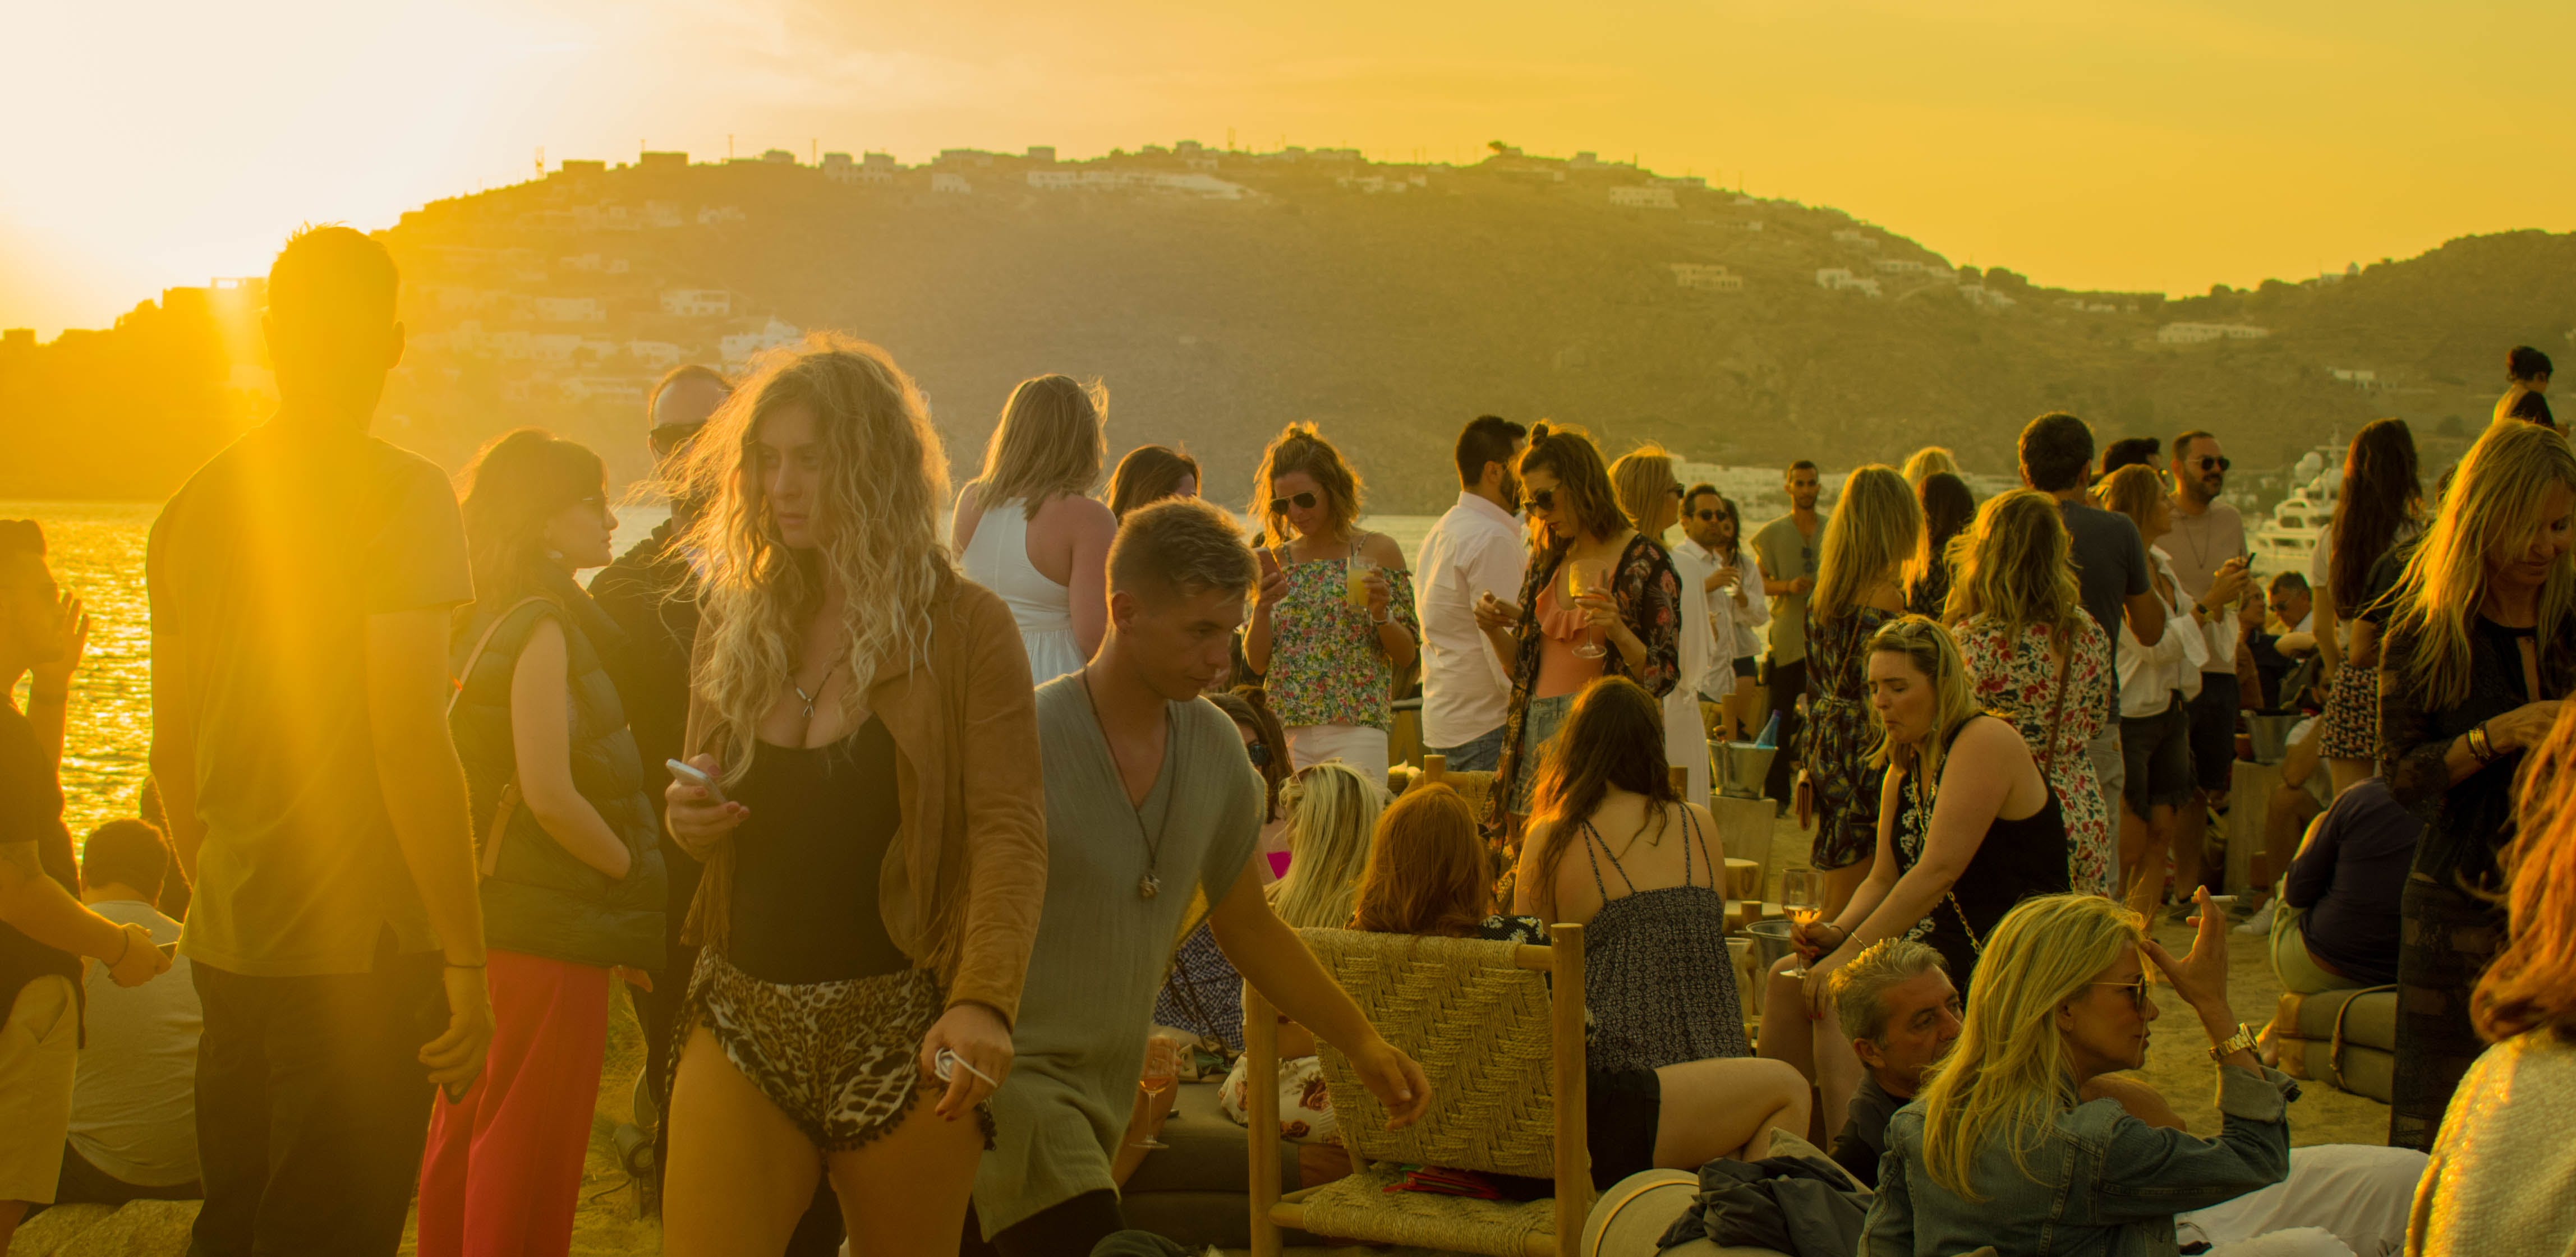 Crowd of People Gathering during Golden Hour